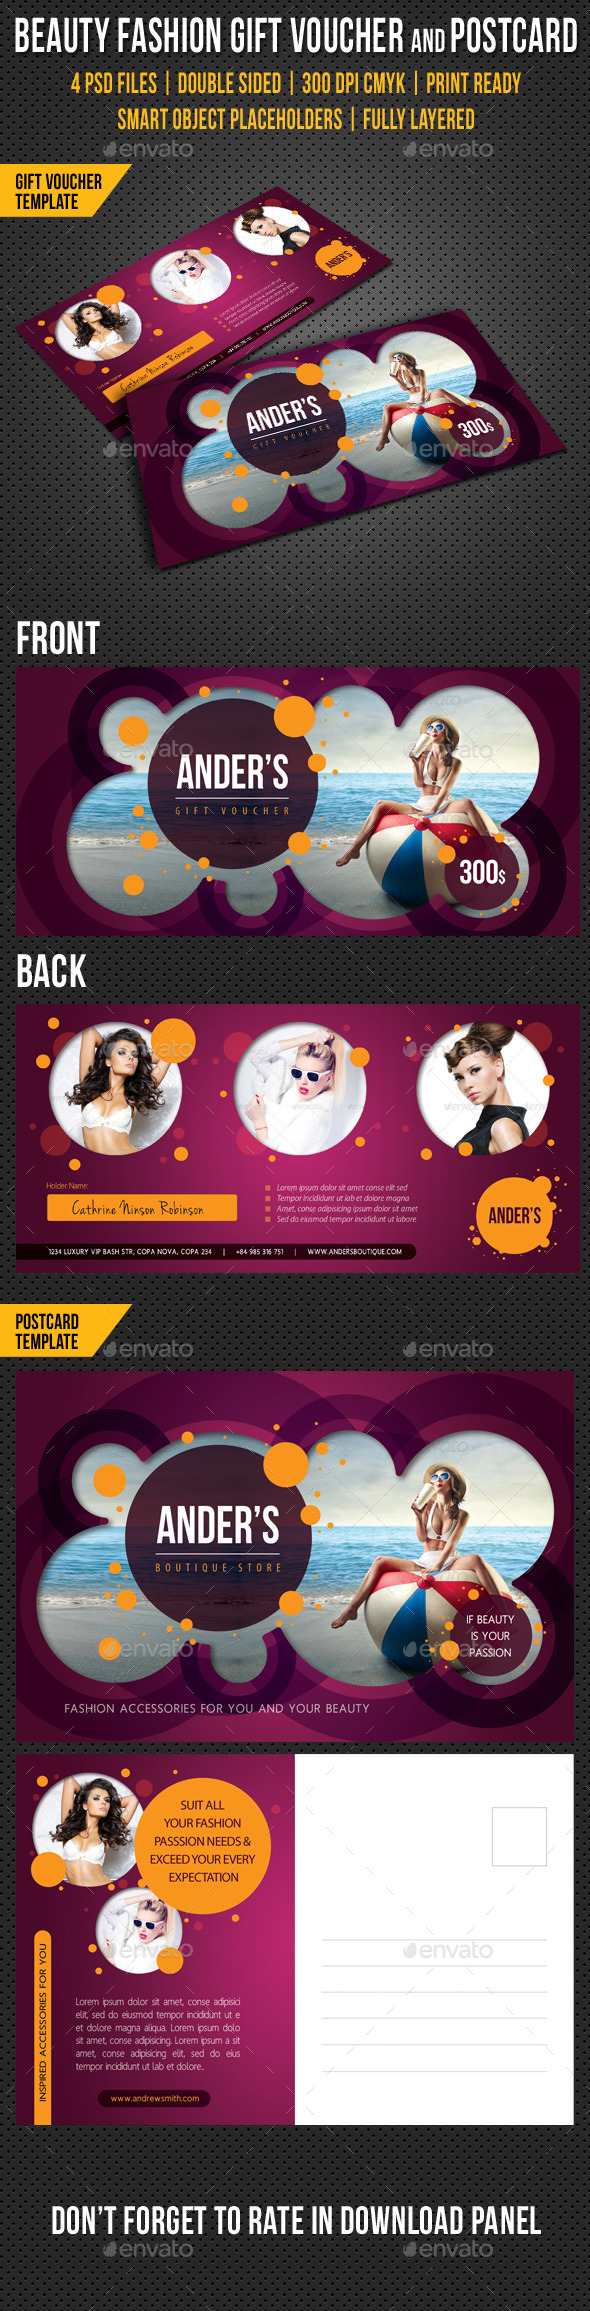 GraphicRiver Beauty Fashion Gift Voucher and Postcard V02 10106675